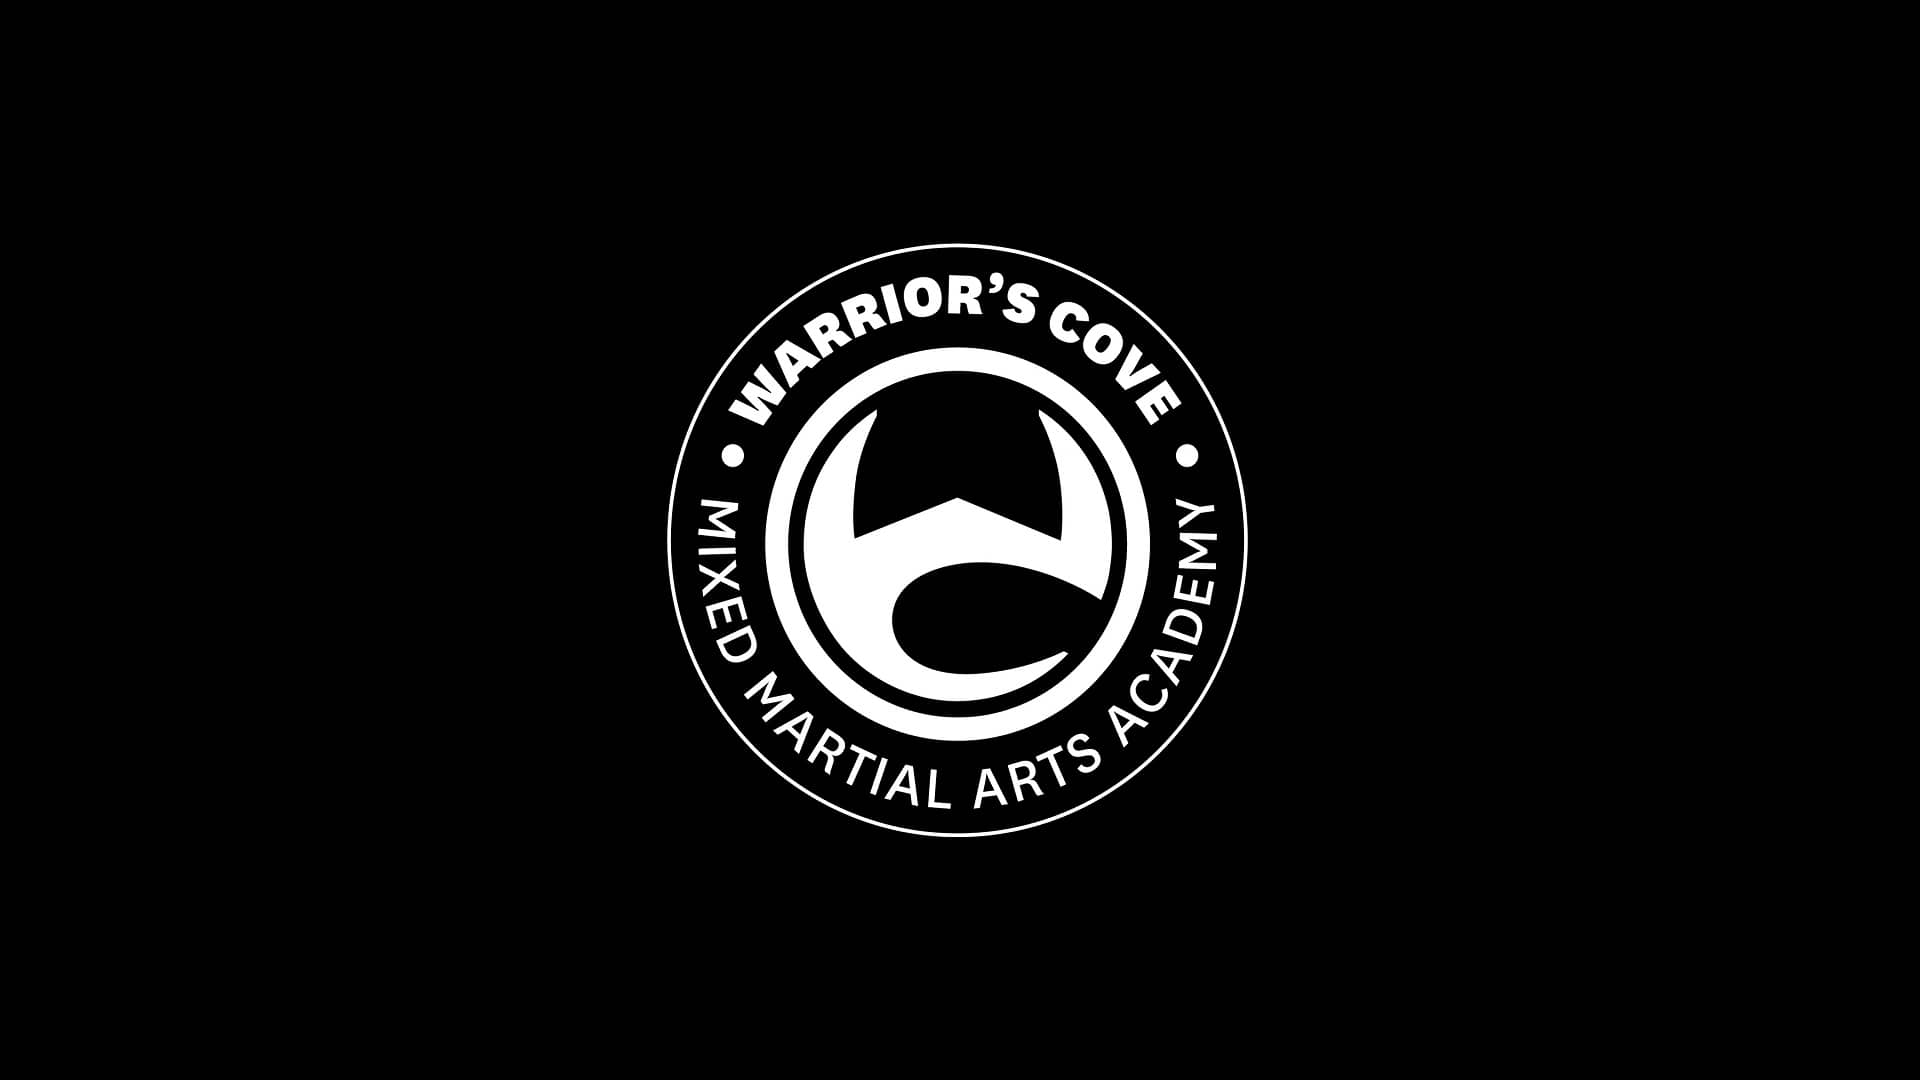 Warriors-Cove-MMA-Gurgaon-Ashwin-Hoon